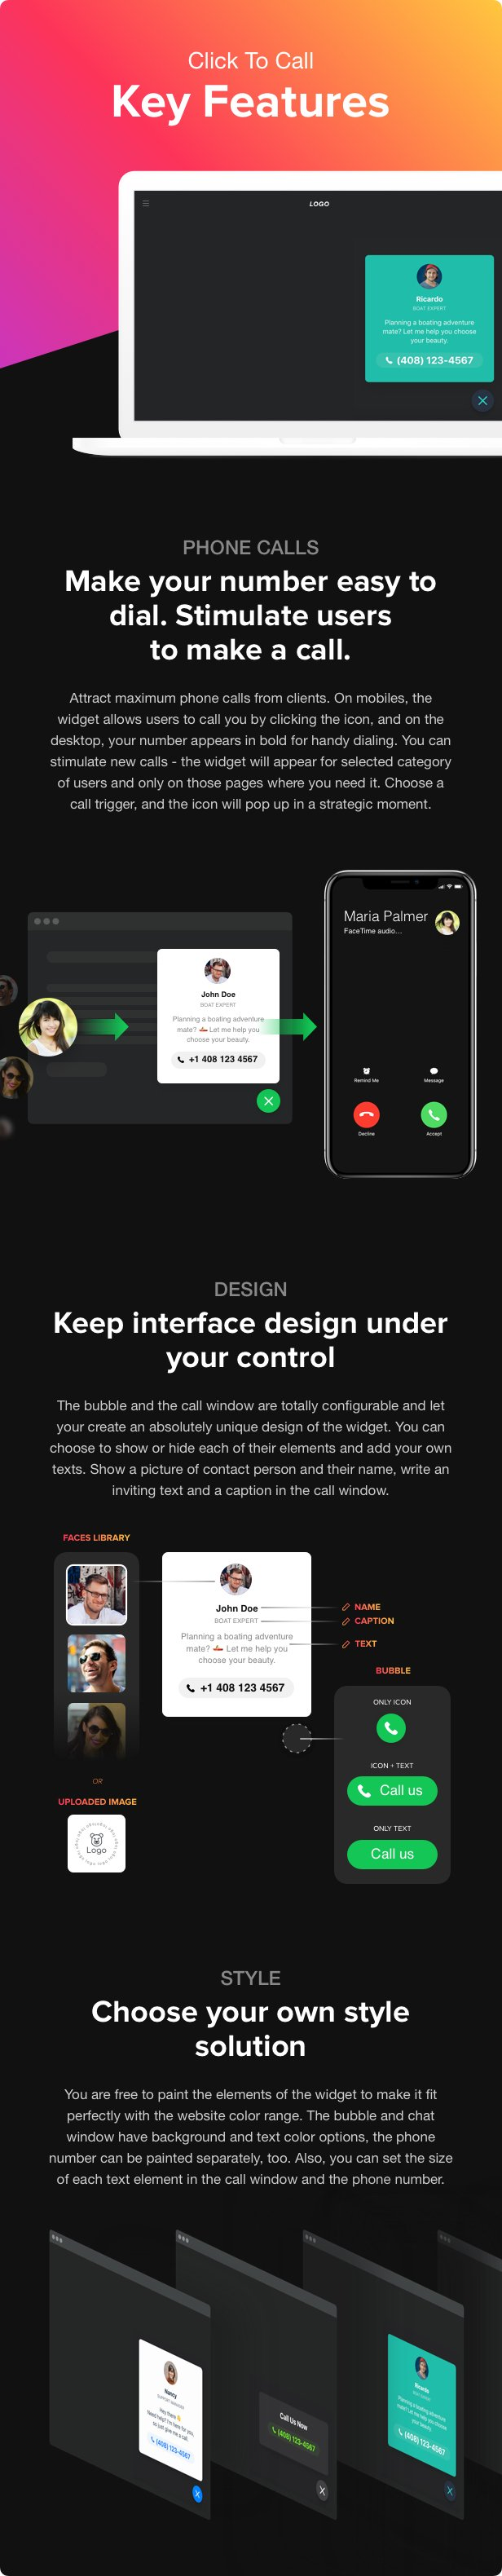 Click to Call - Call Button plugin for WordPress - 1